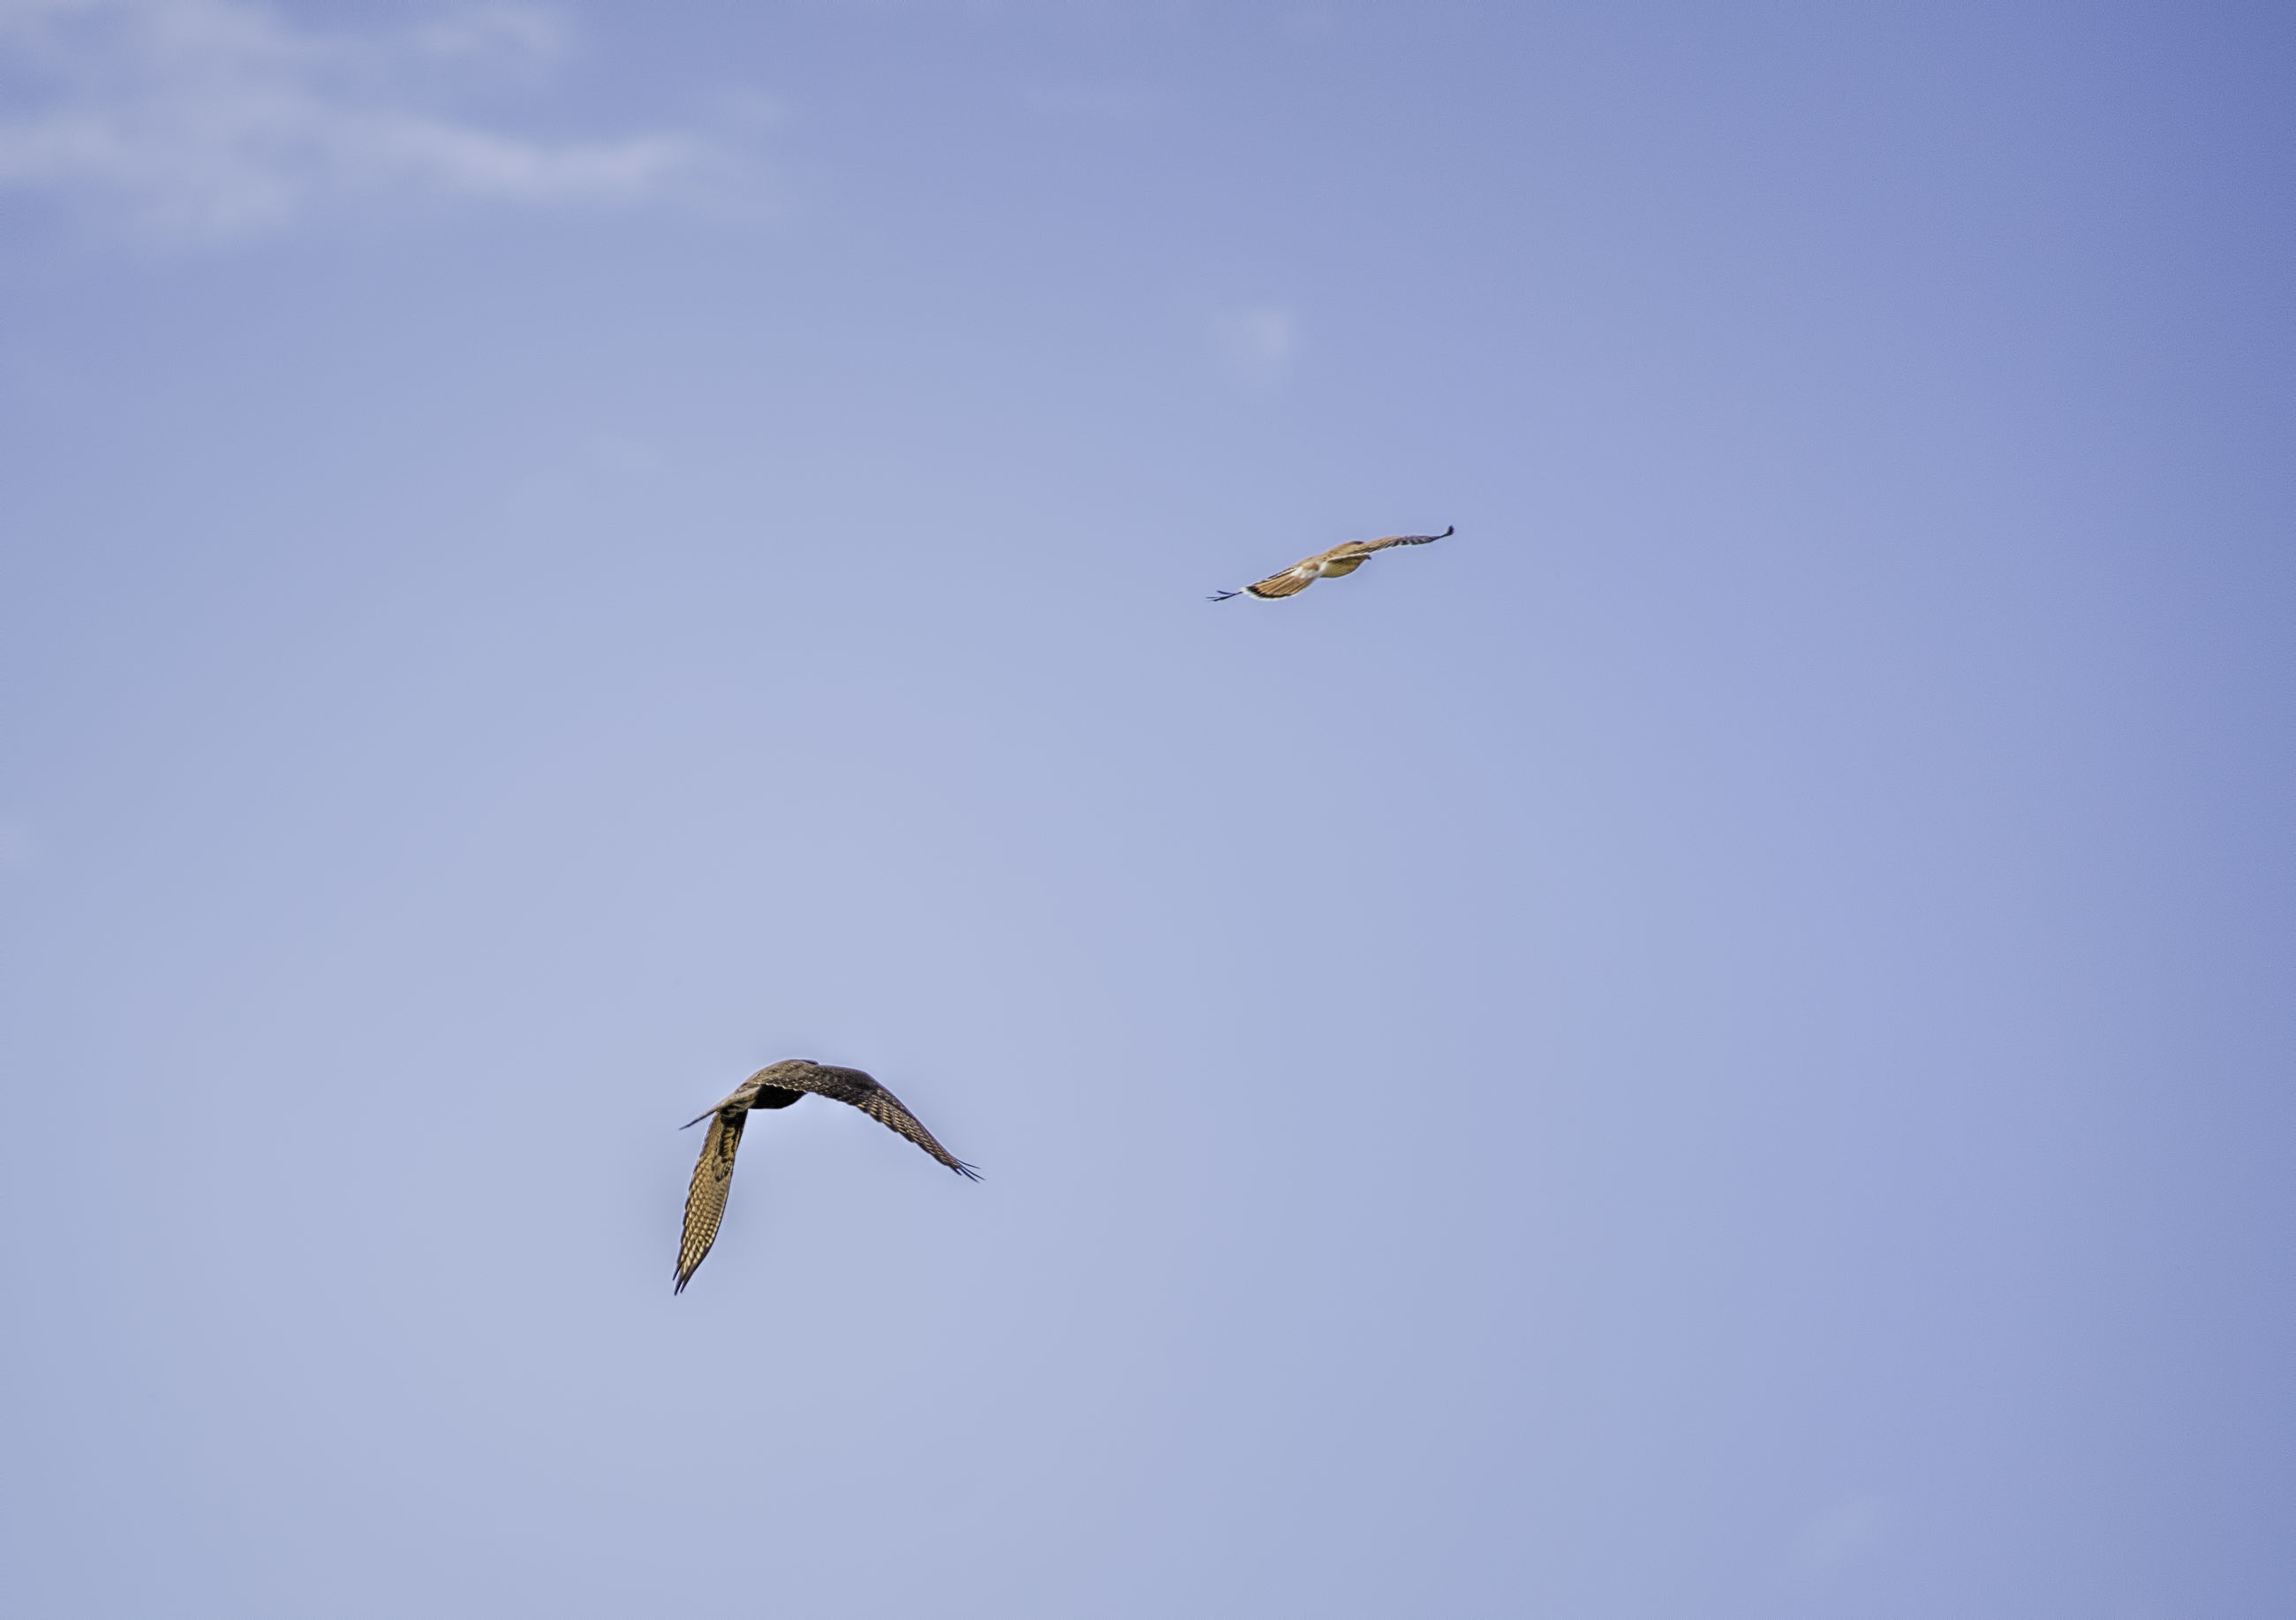 flying, animal themes, mid-air, animals in the wild, low angle view, wildlife, spread wings, bird, one animal, motion, on the move, sky, freedom, nature, clear sky, copy space, zoology, two animals, full length, blue